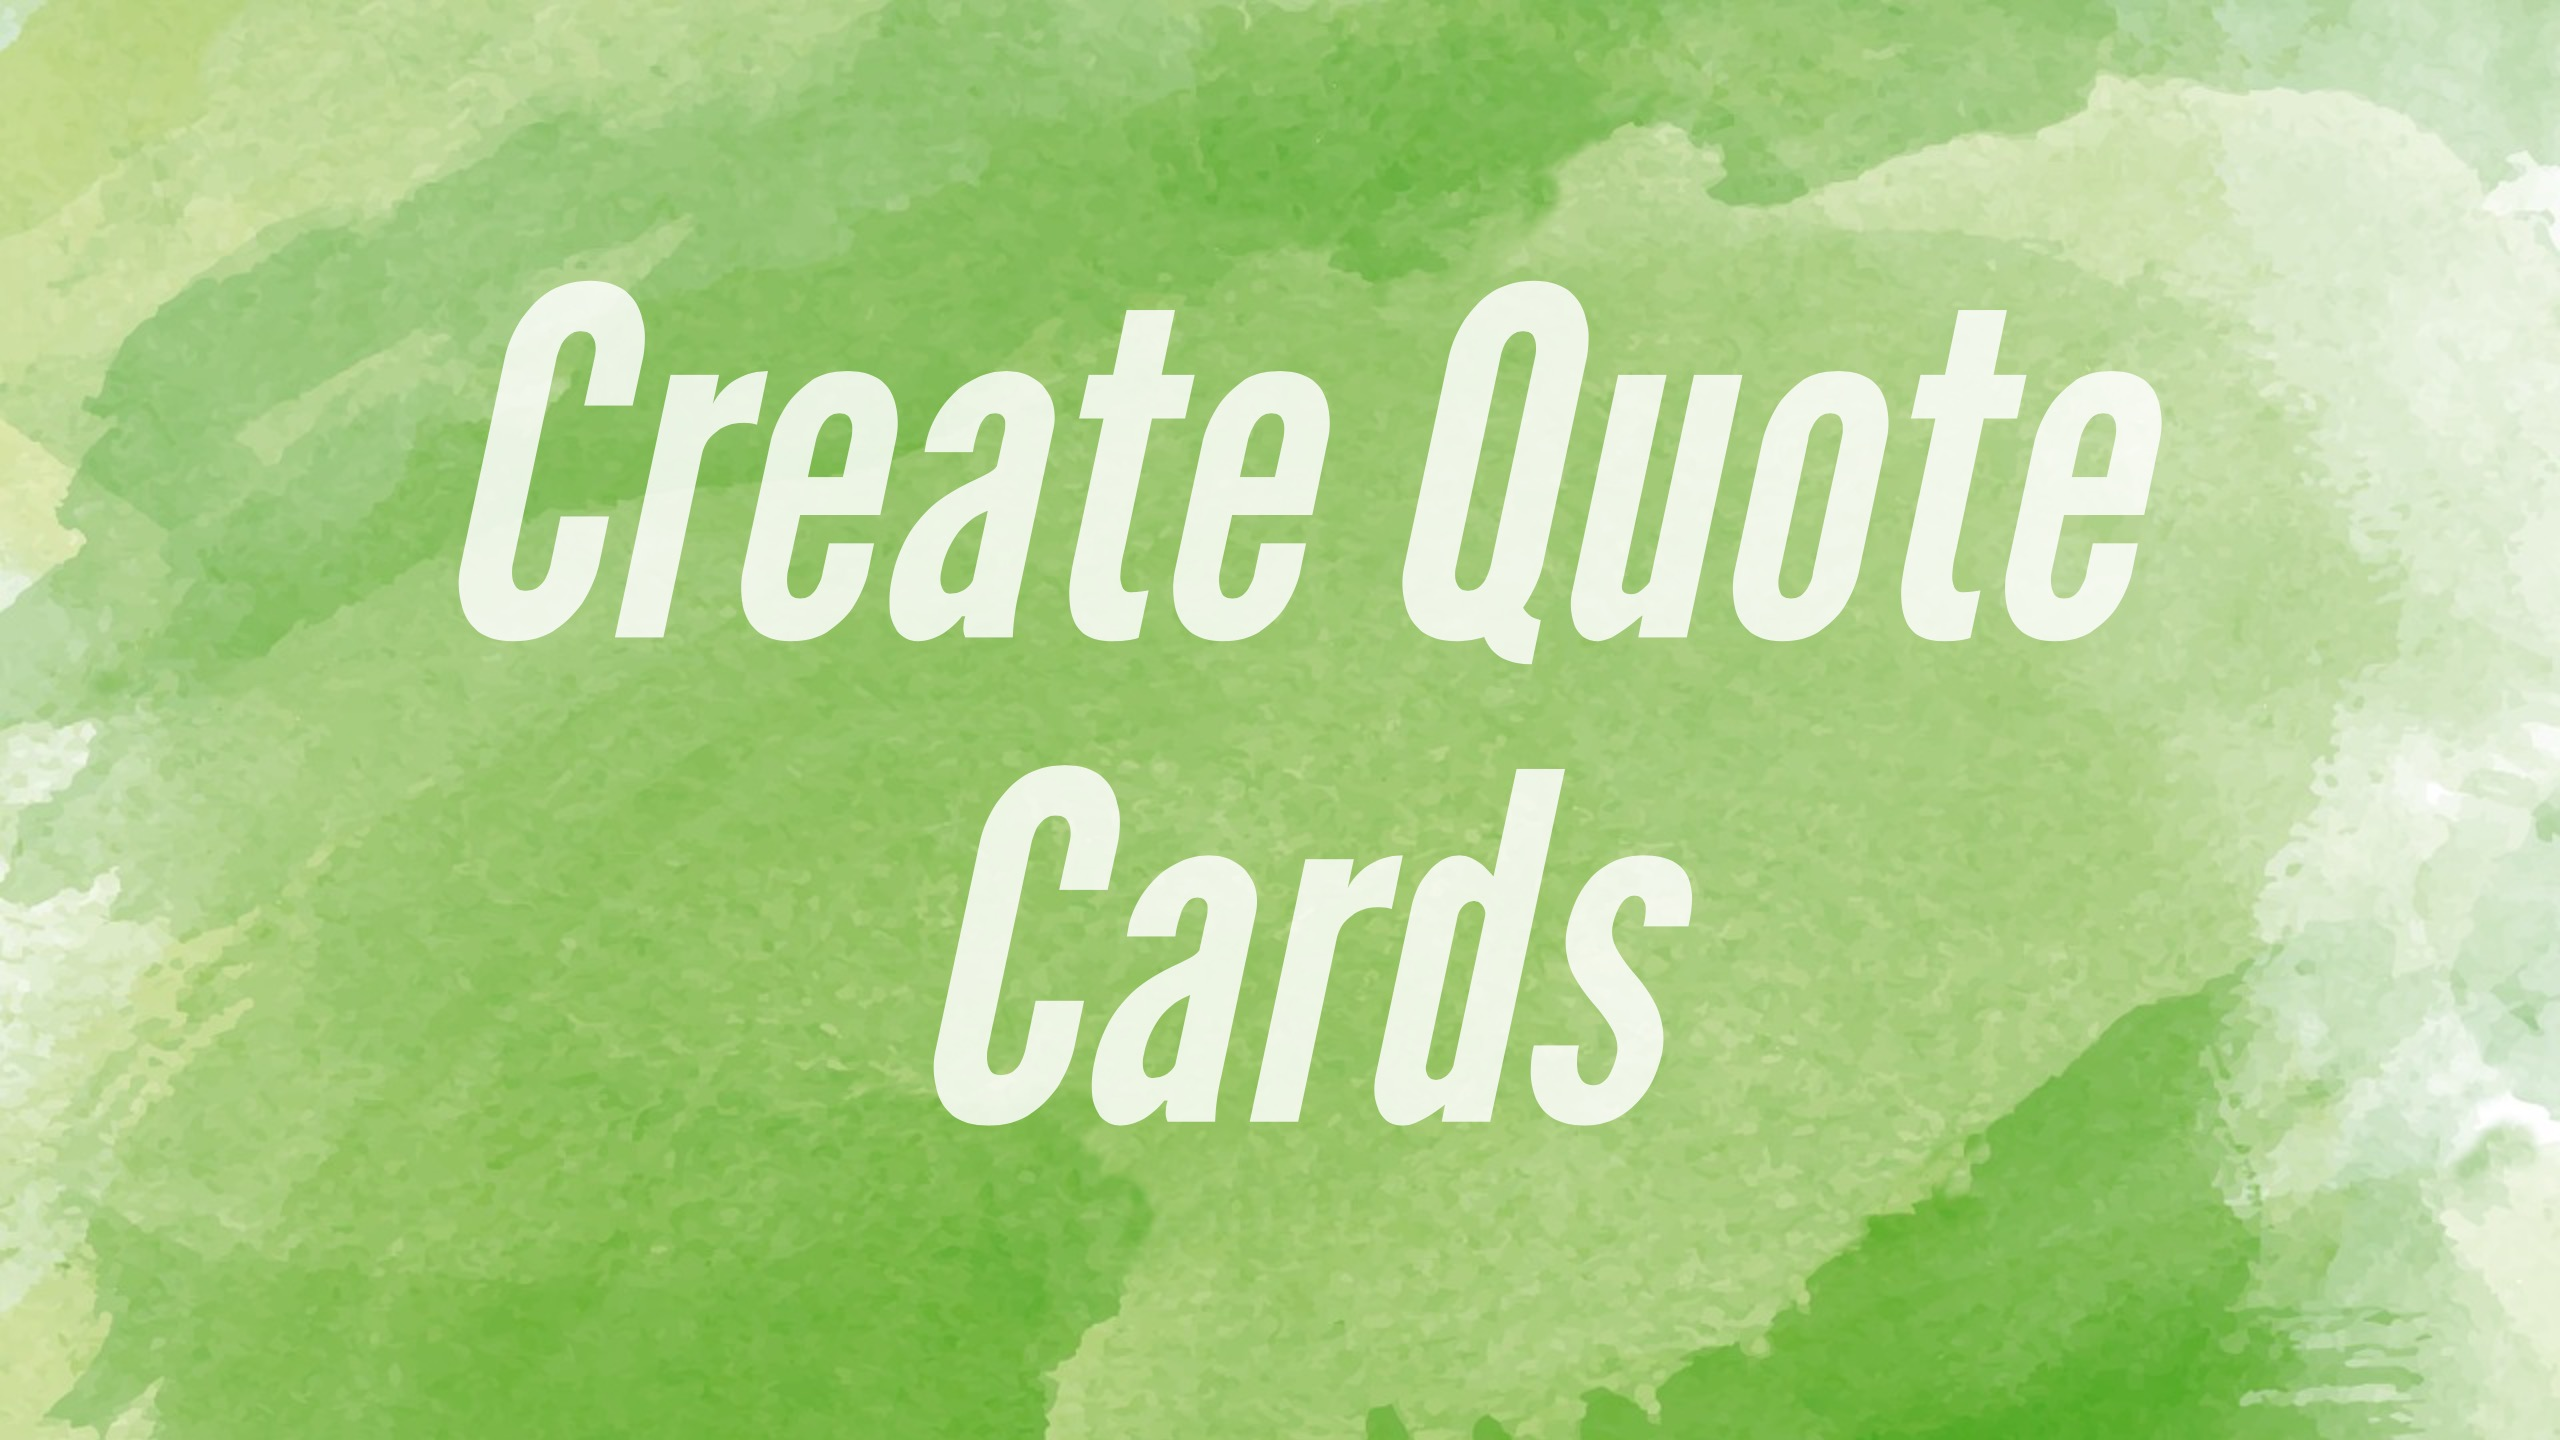 create quote cards